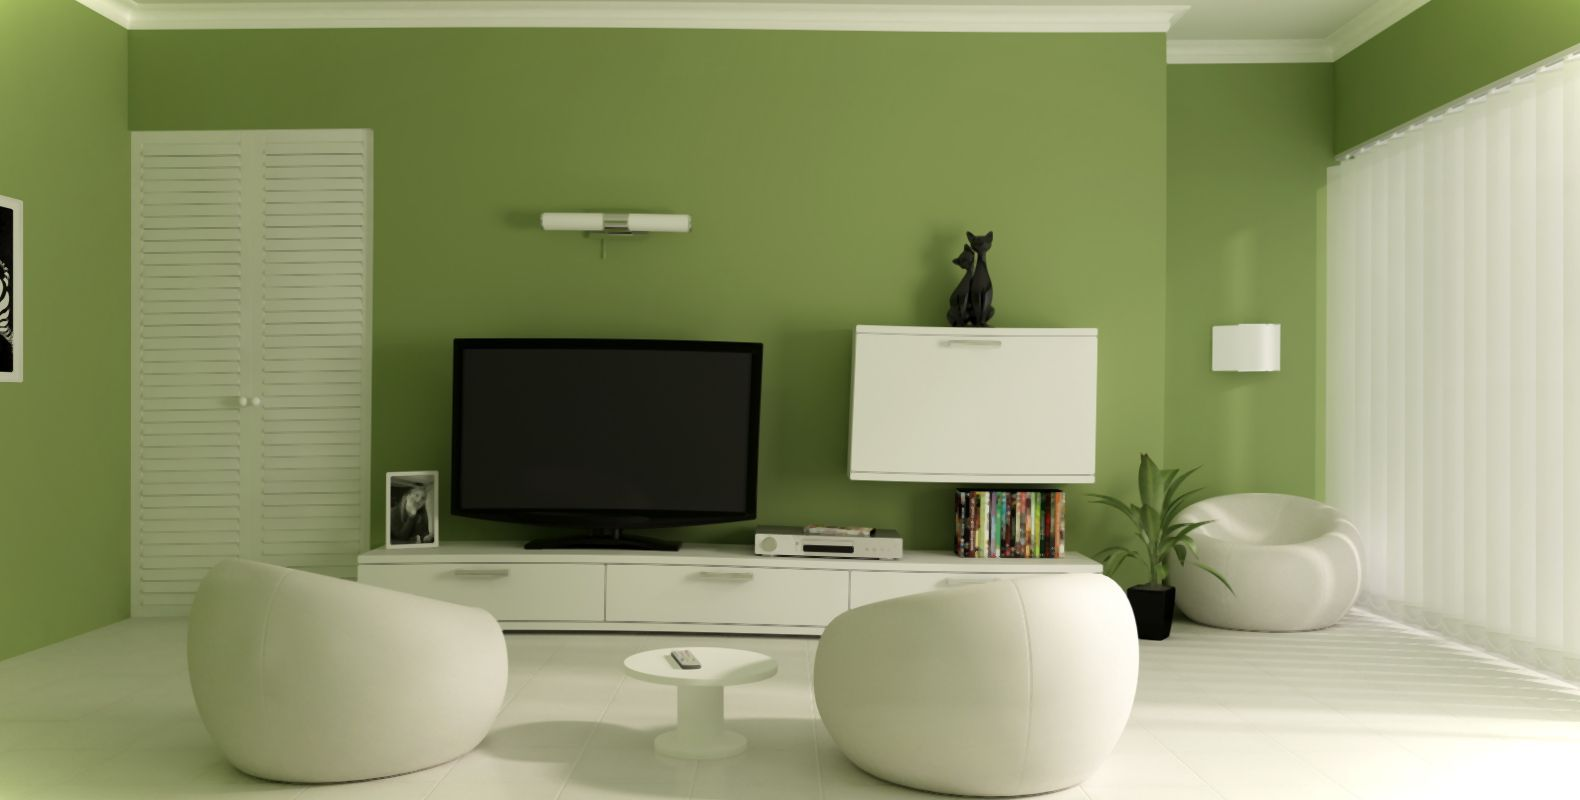 Beautiful Paint Colors Custom Beautiful Small Living Room Design With Green Wall Paint Color And Review